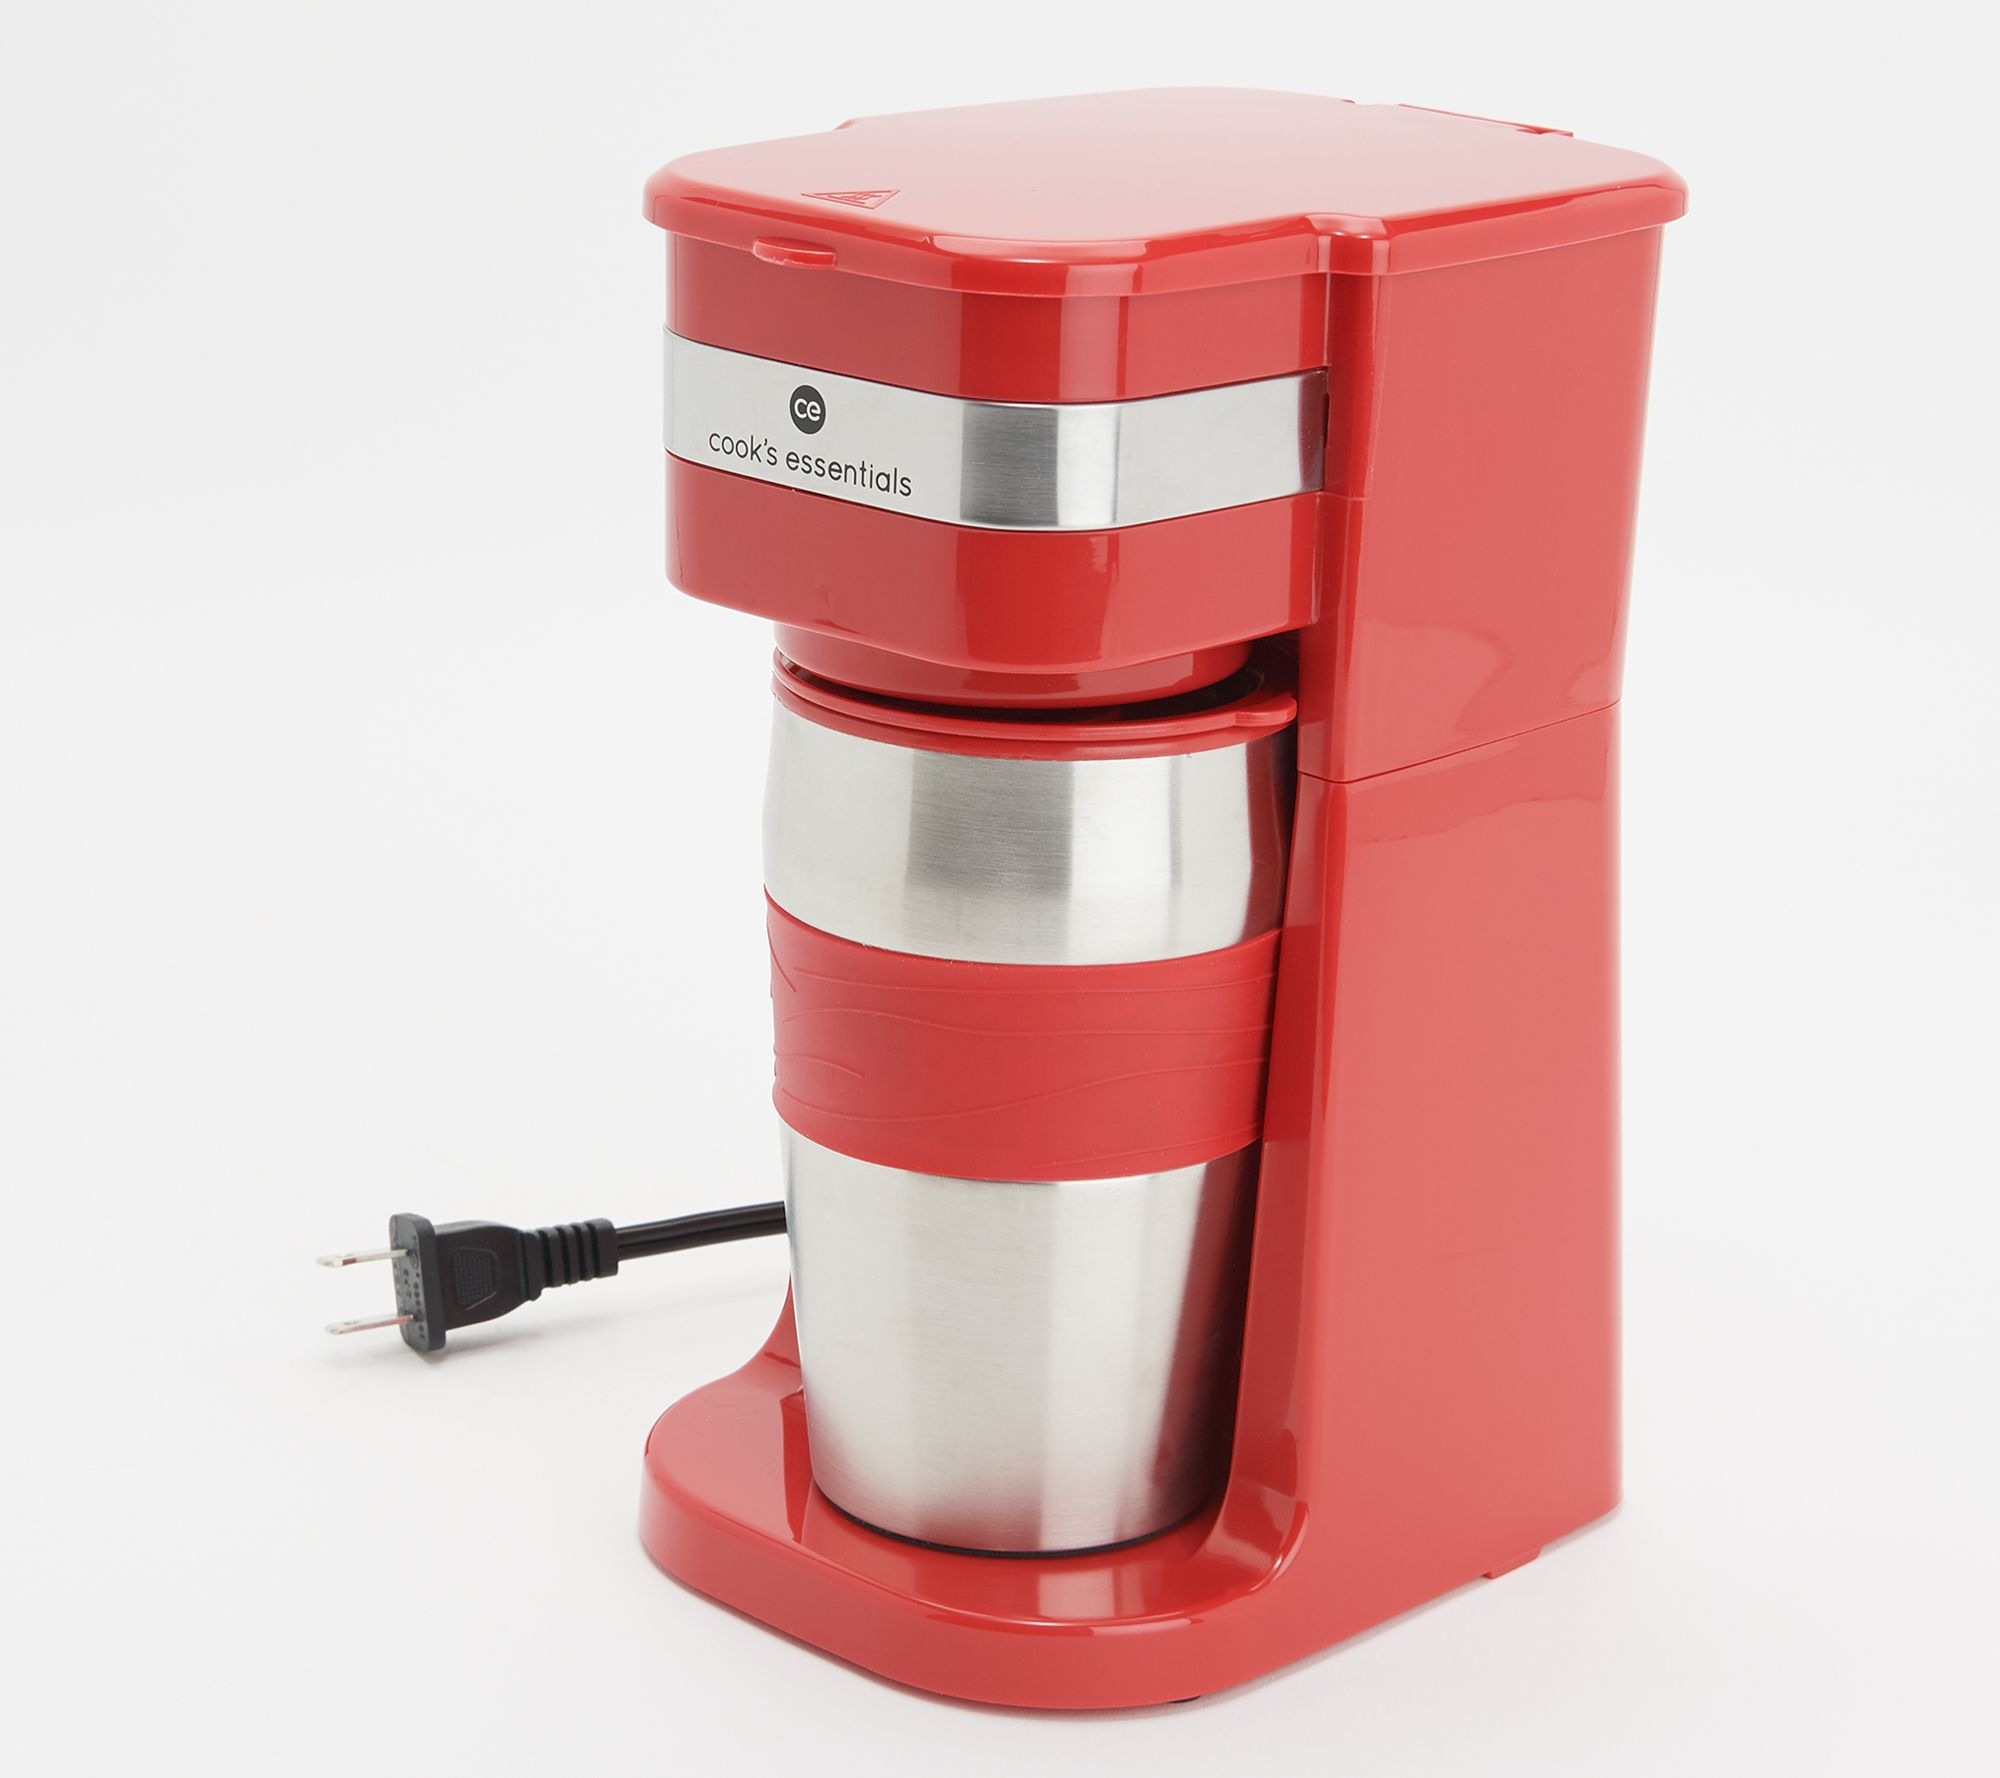 16% off a single-serve coffee maker